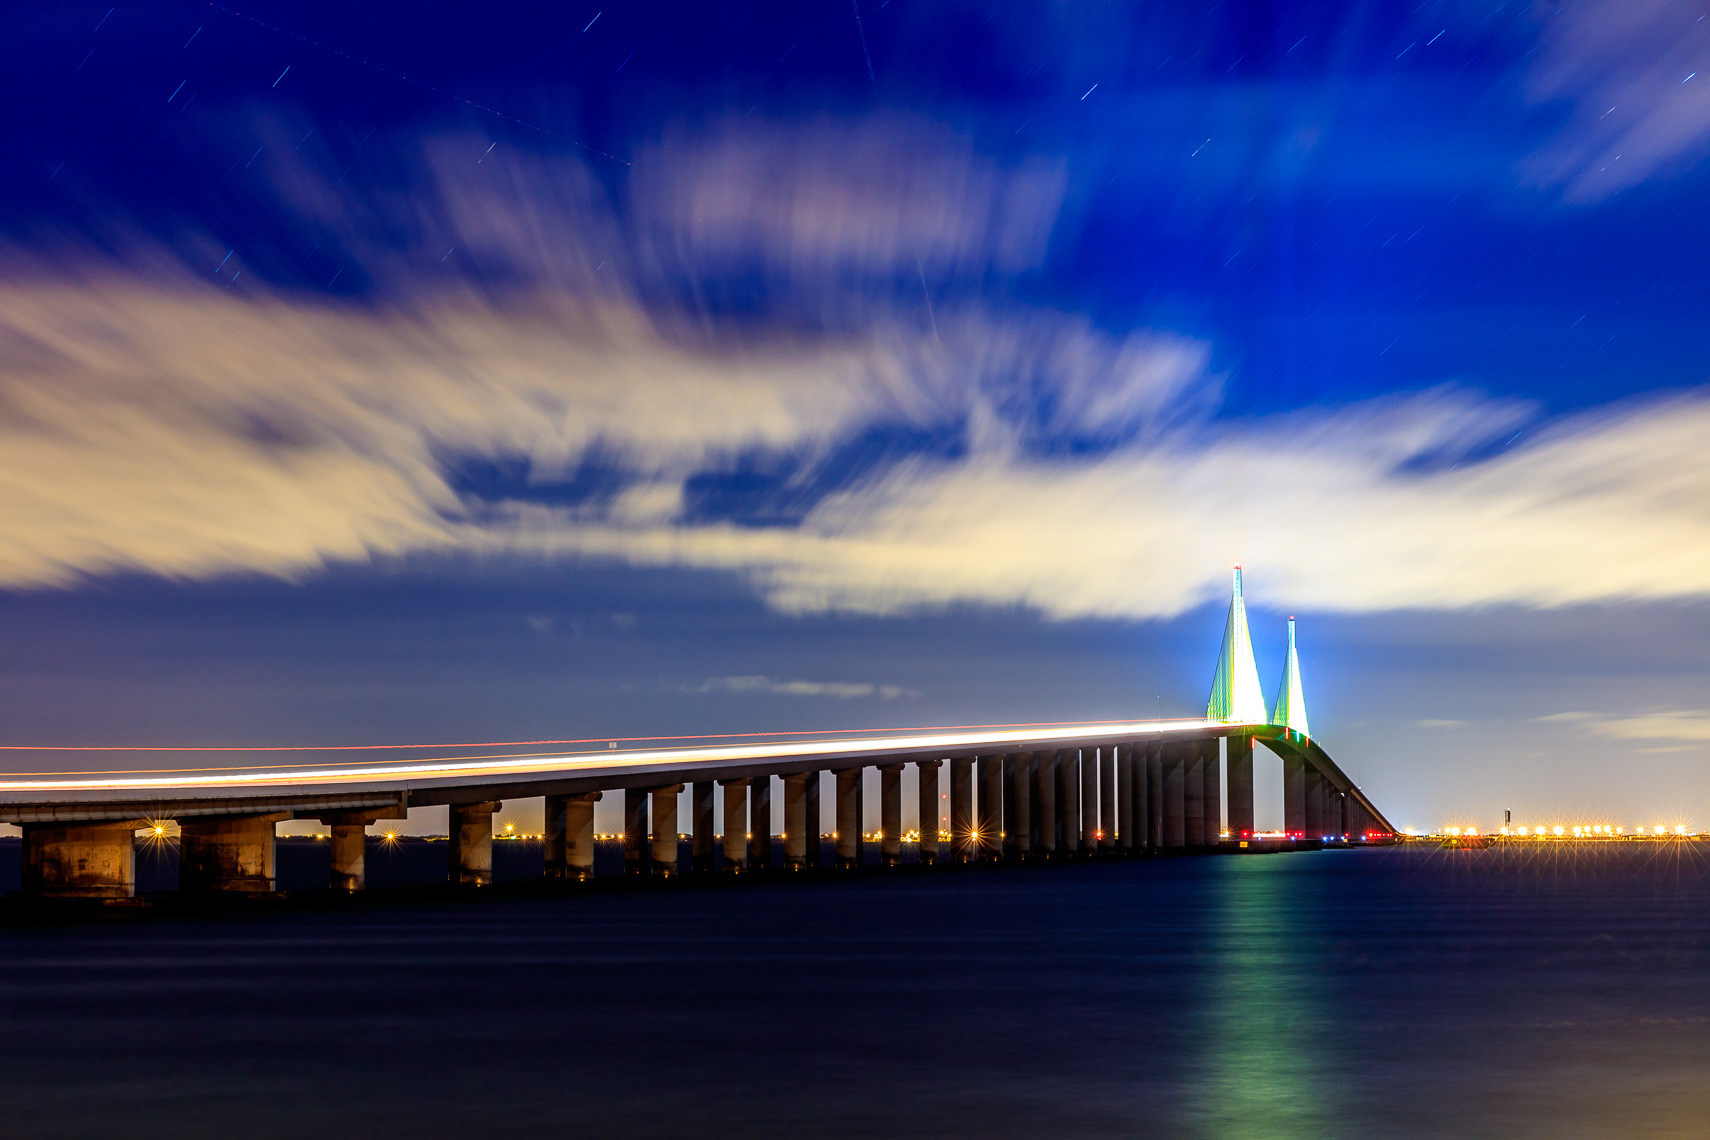 The Skyway Bridge at Night